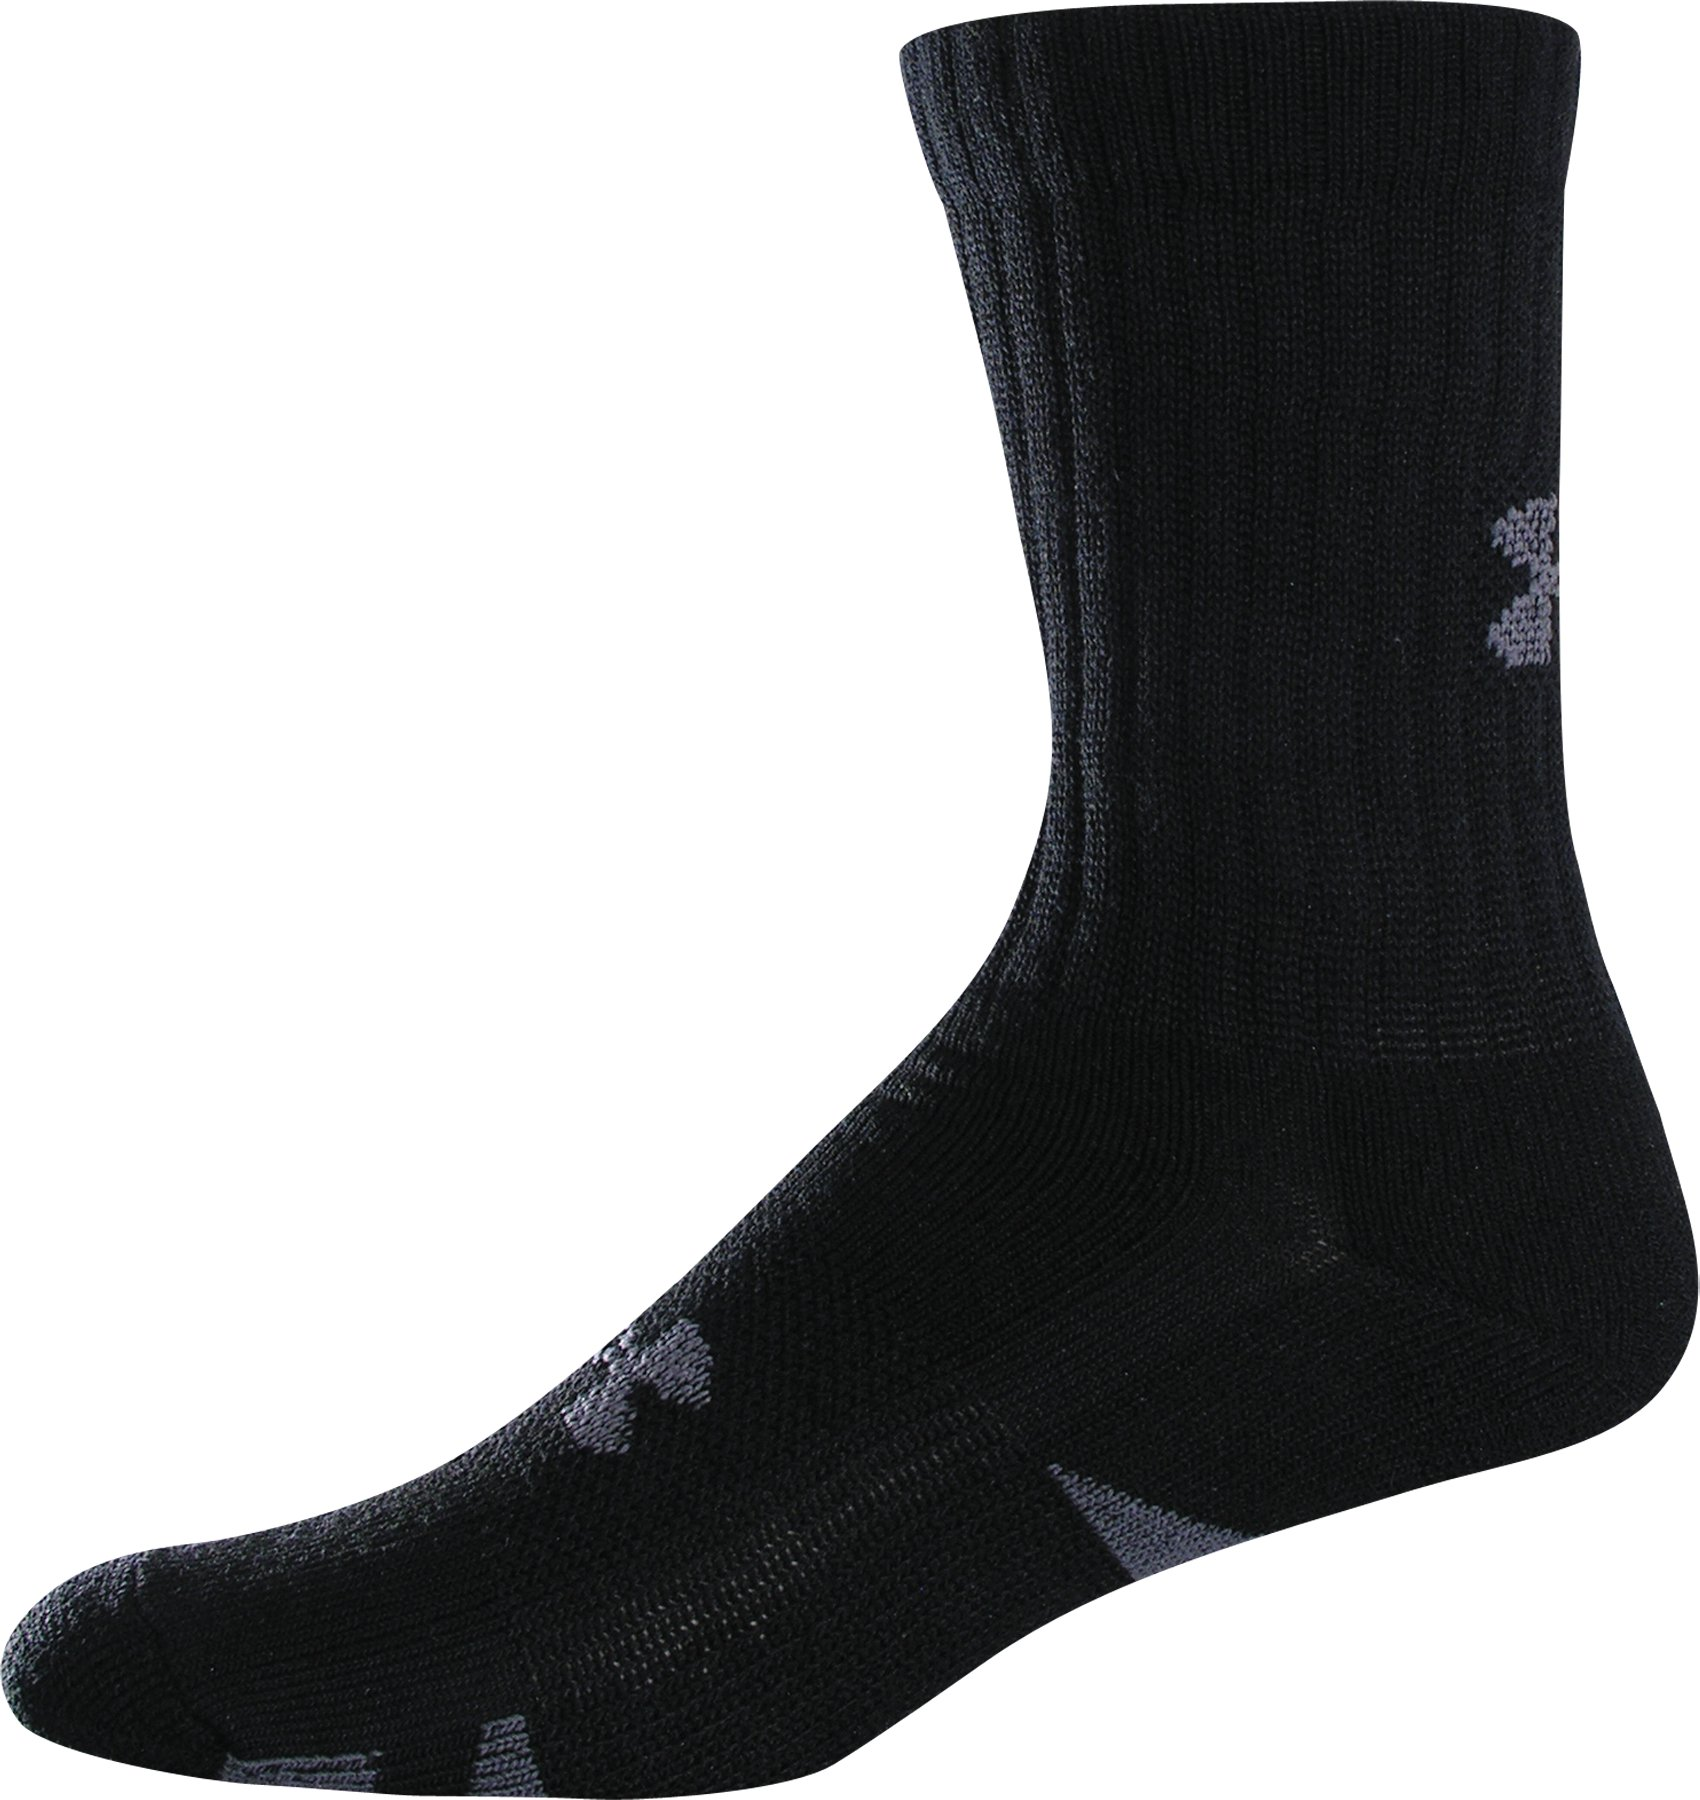 HeatGear® Trainer Crew Socks 4-Pack, Black